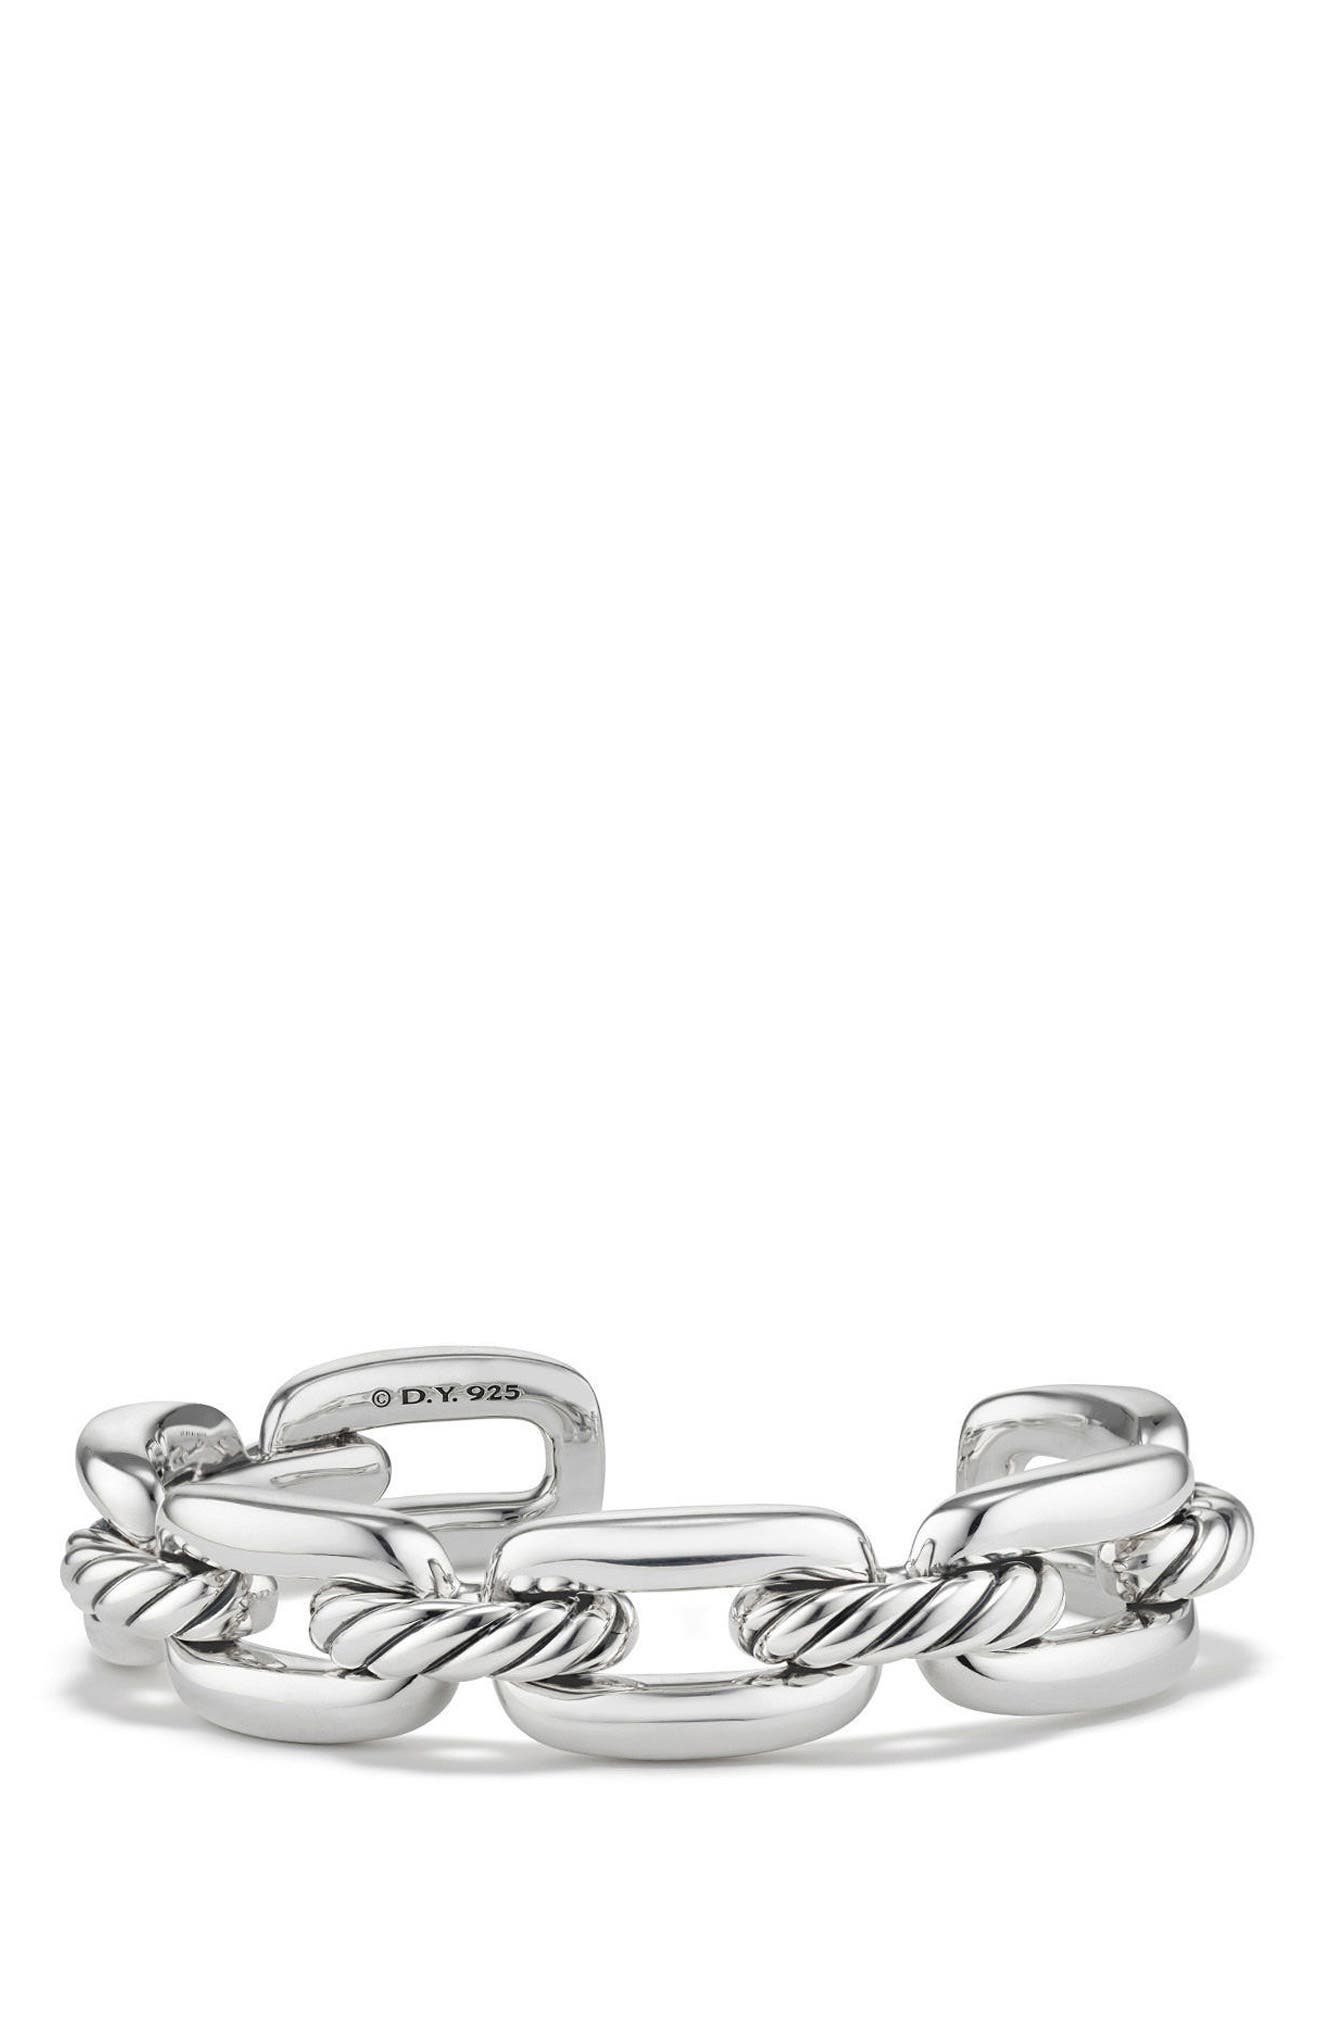 Wellesley Chain Link Cuff Bracelet,                         Main,                         color, SILVER